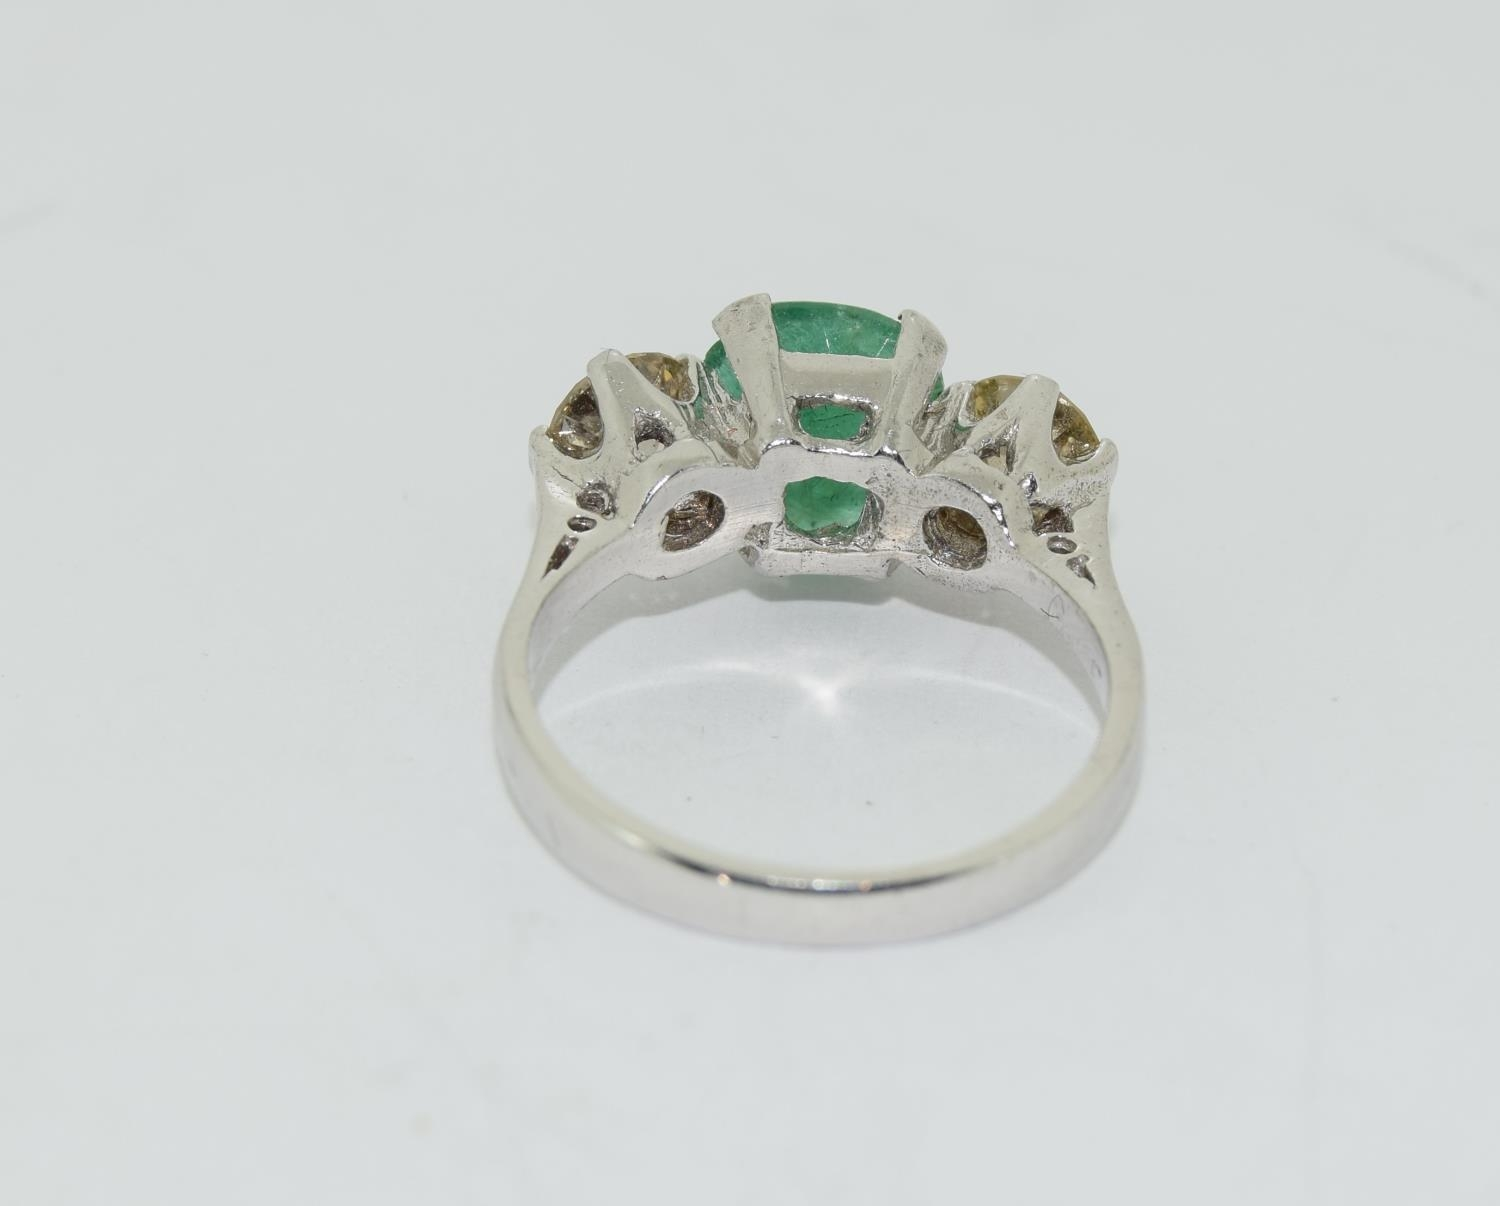 18ct white gold pear shape emerald and diamond ring of approx 1.2ct size L - Image 3 of 5